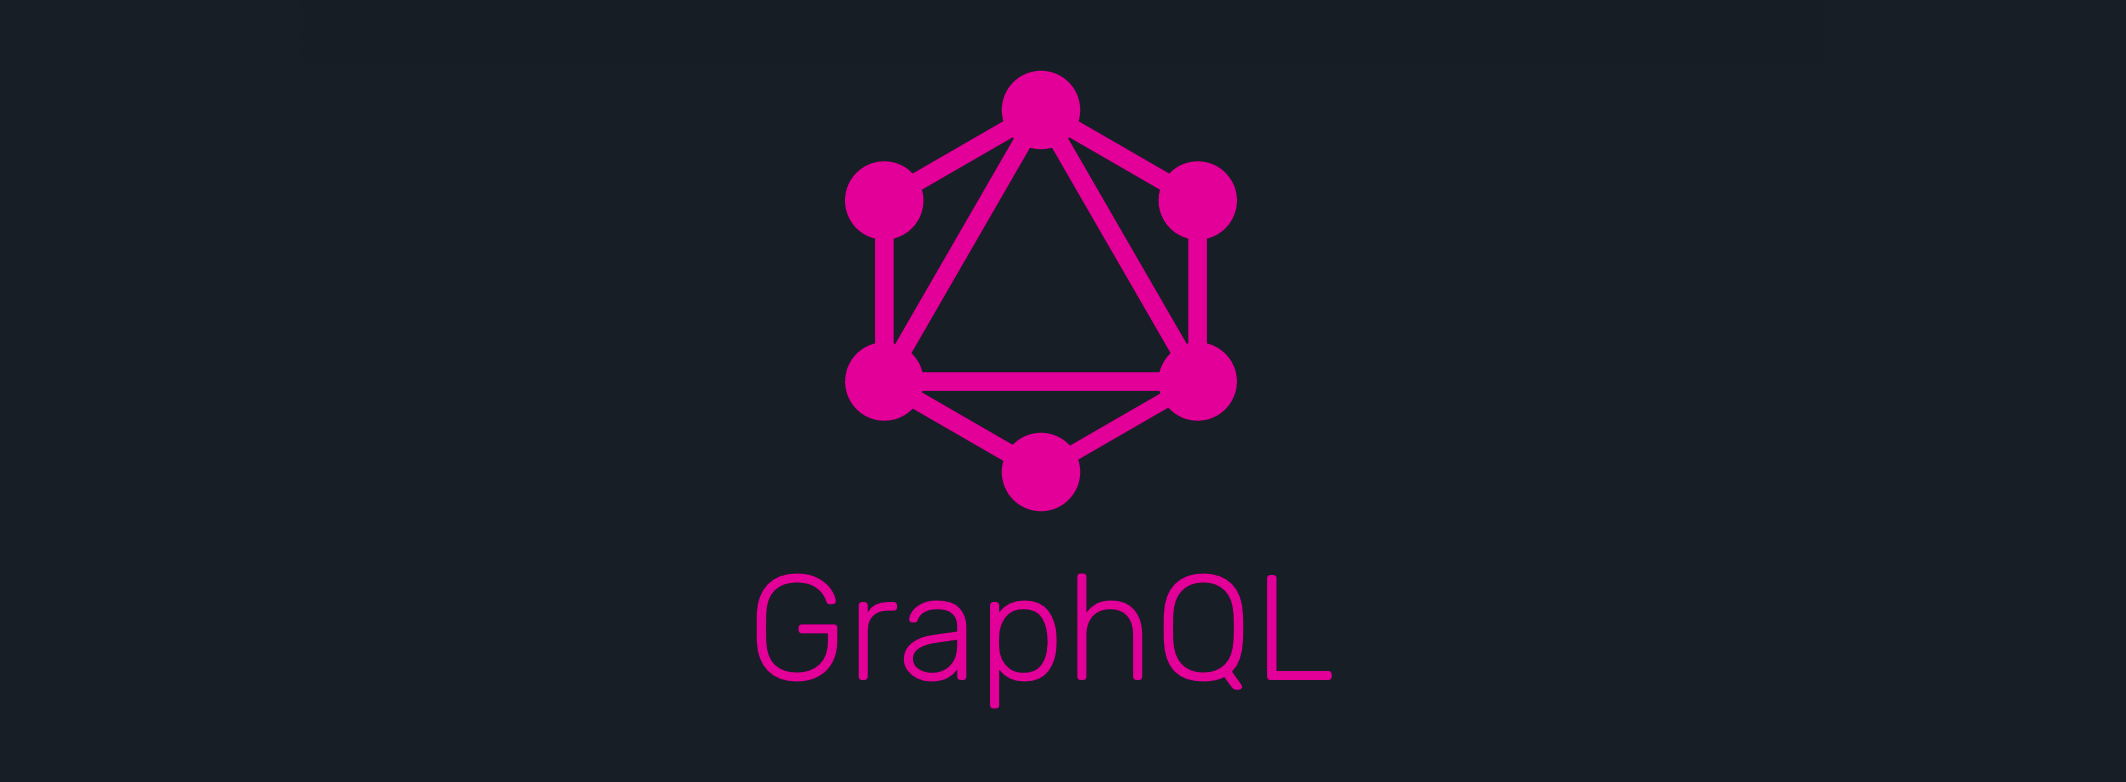 GraphQL - asap developers is a San Francisco Python Company